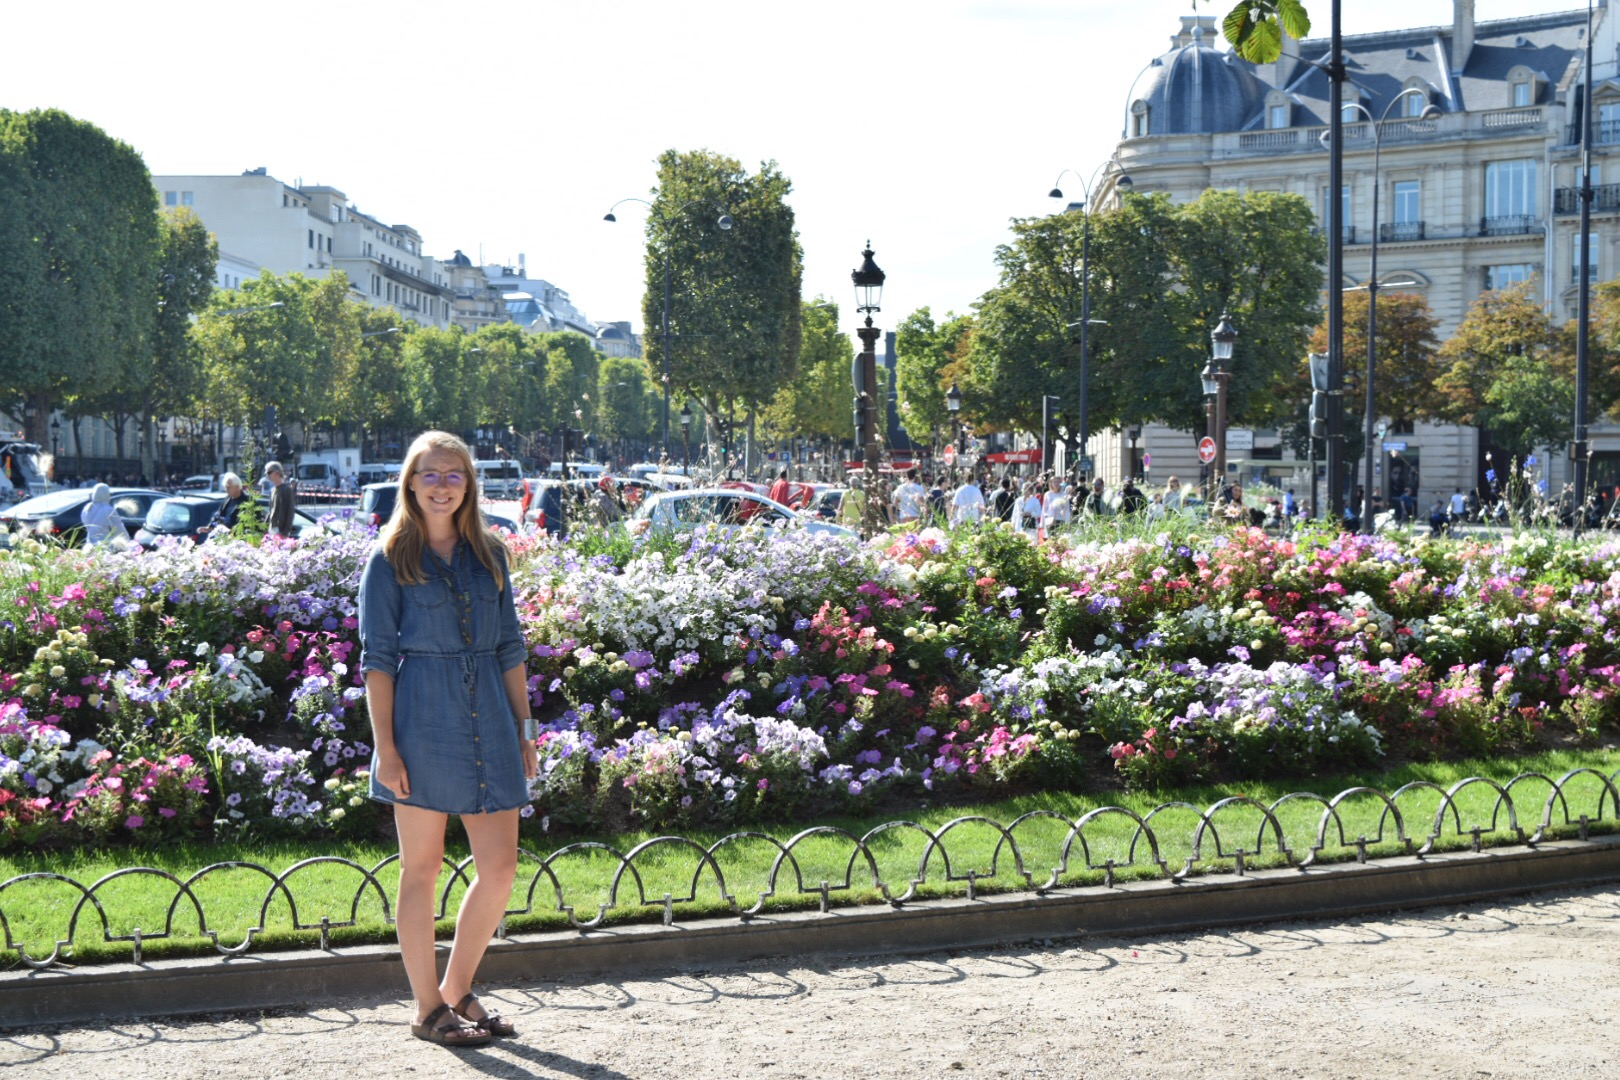 Day 6:  Champs Elysees